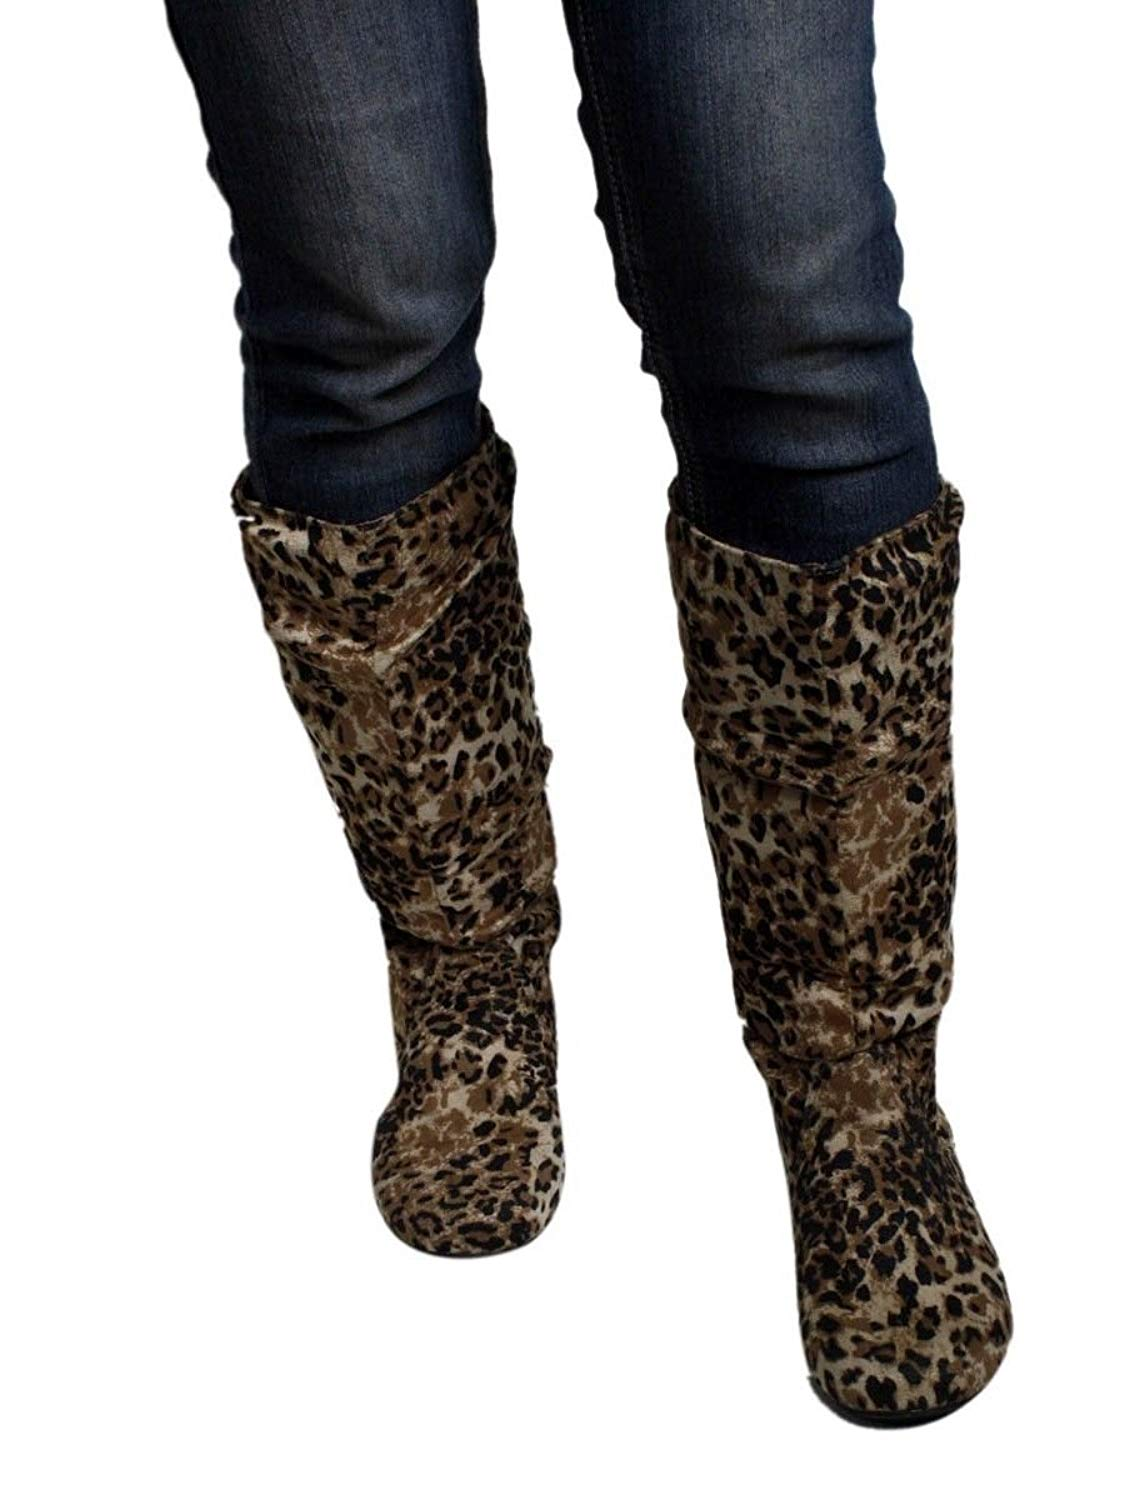 341b3e16bdb6 Get Quotations · Women's Fashion Knee-High Faux Suede Material Flat Slouch, Round  Toe Boots -048